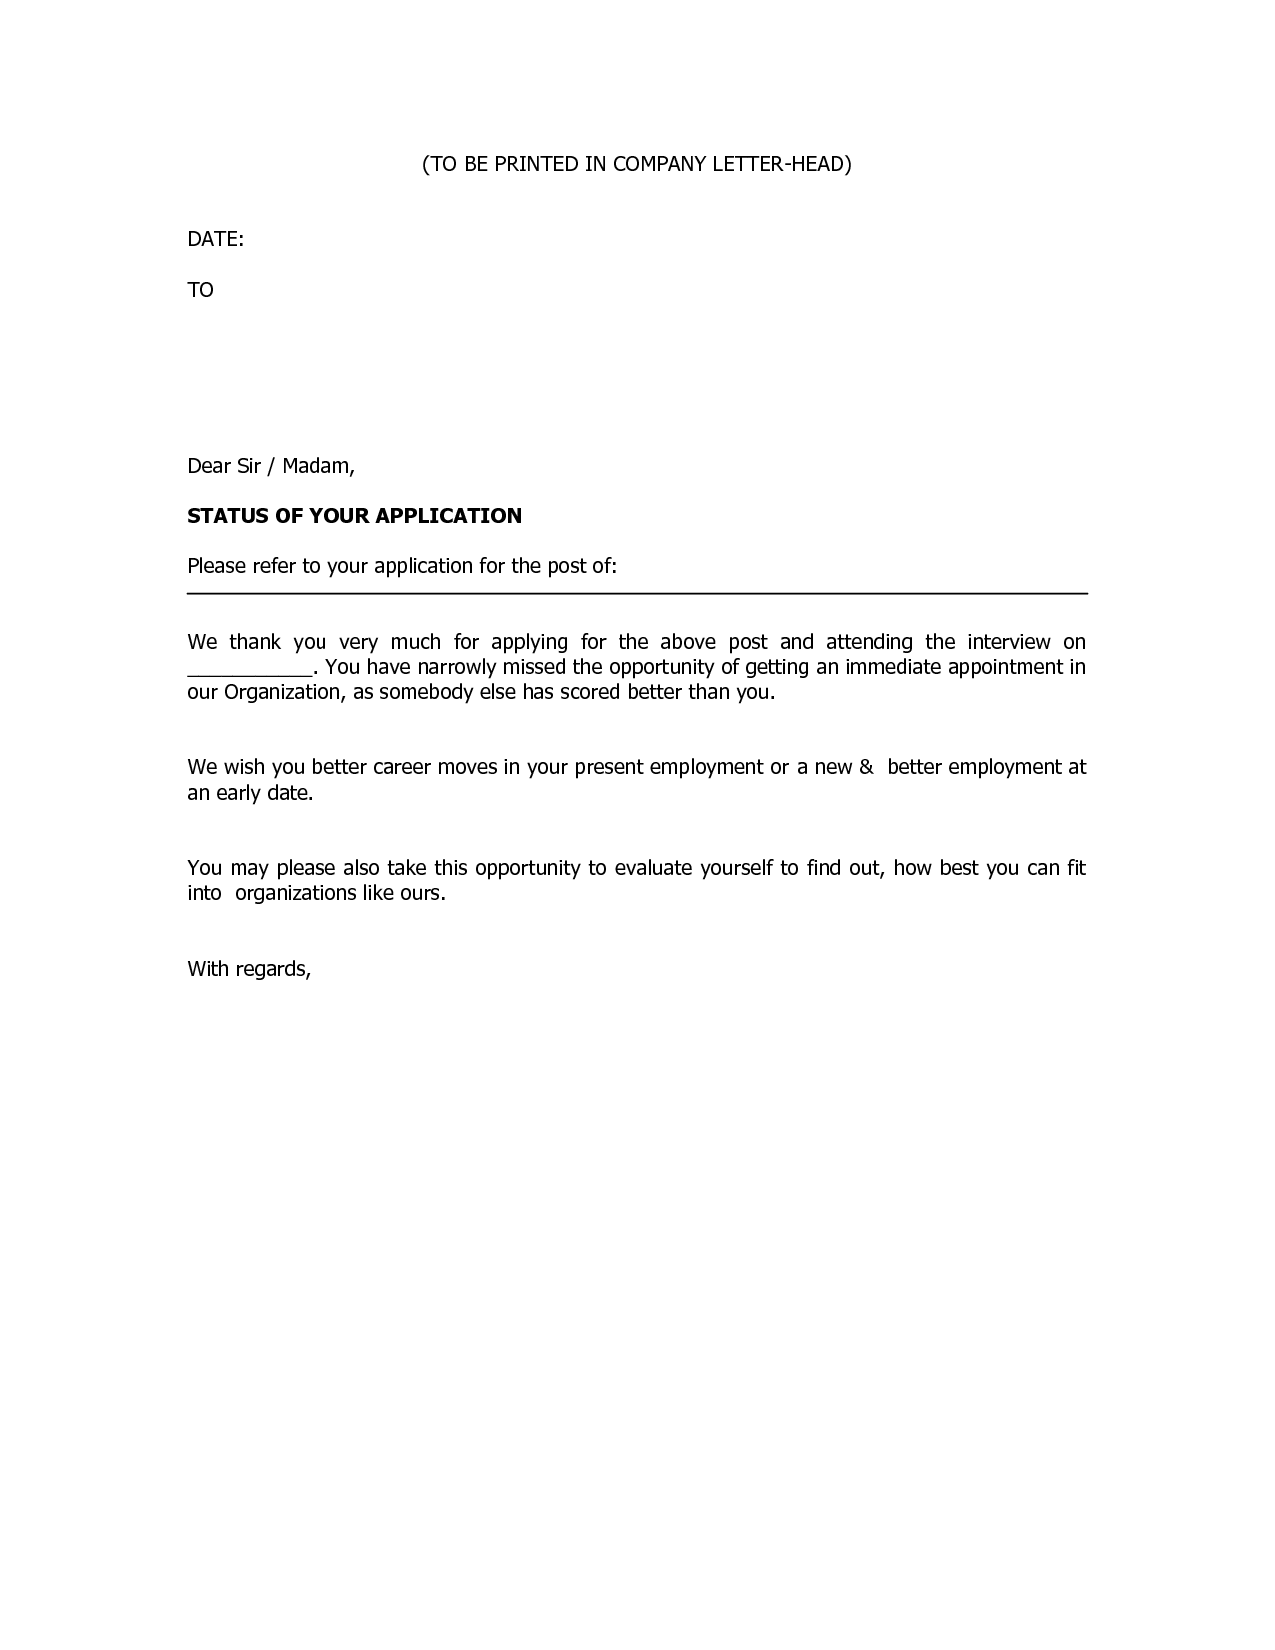 rejection letter for job applicants 91 121 113 106 job applicant rejection letter the balance